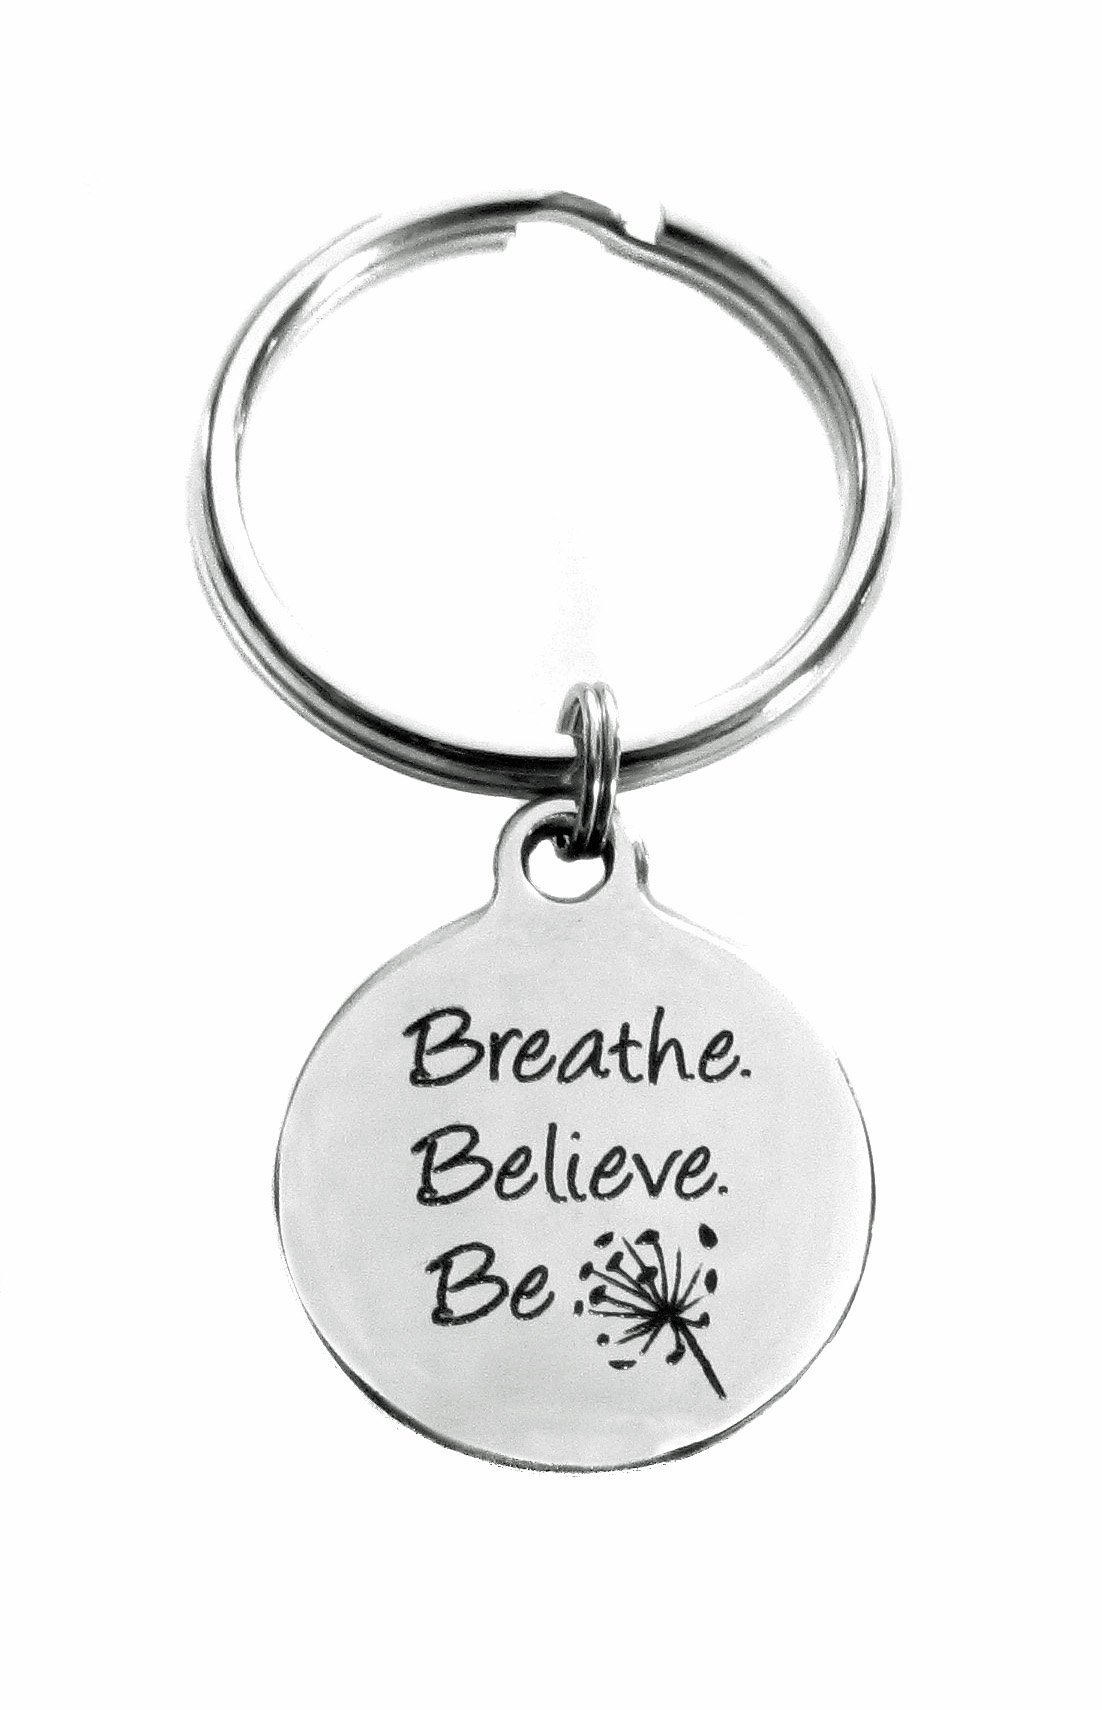 Breathe Believe Be Stainless Steel Keychain, Inspirational Meditation Gift